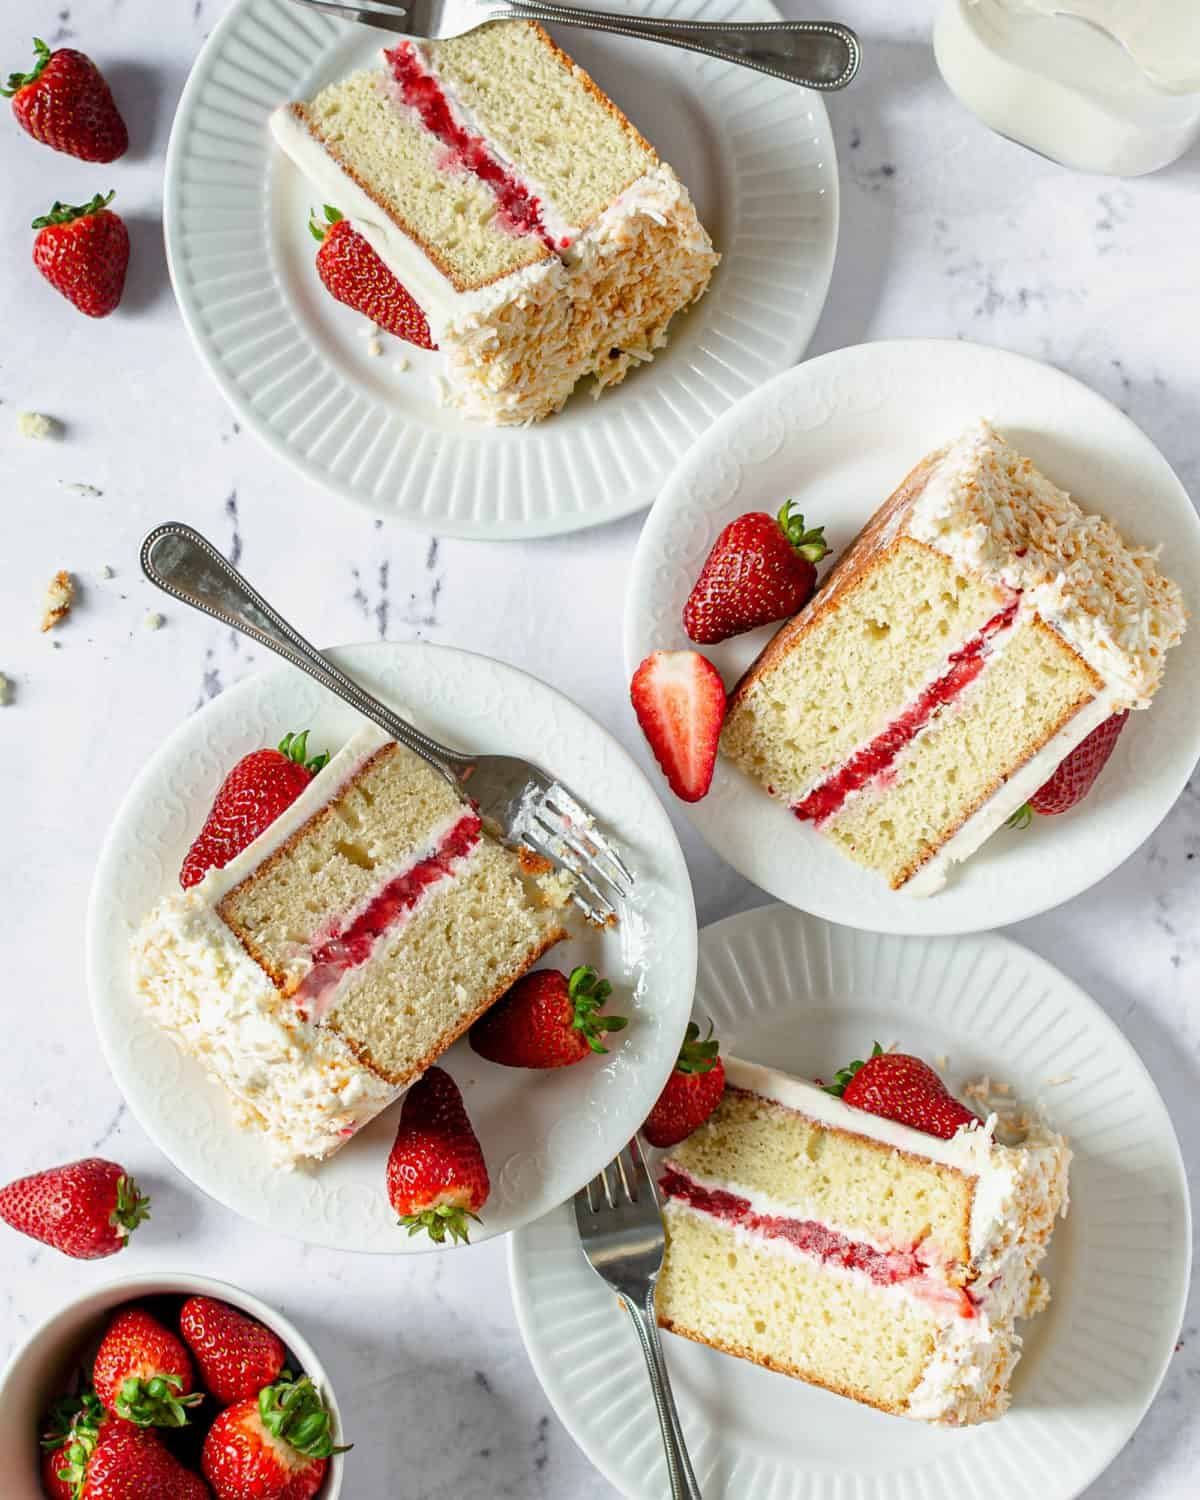 Four slices of coconut strawberry cake on plates with forks.